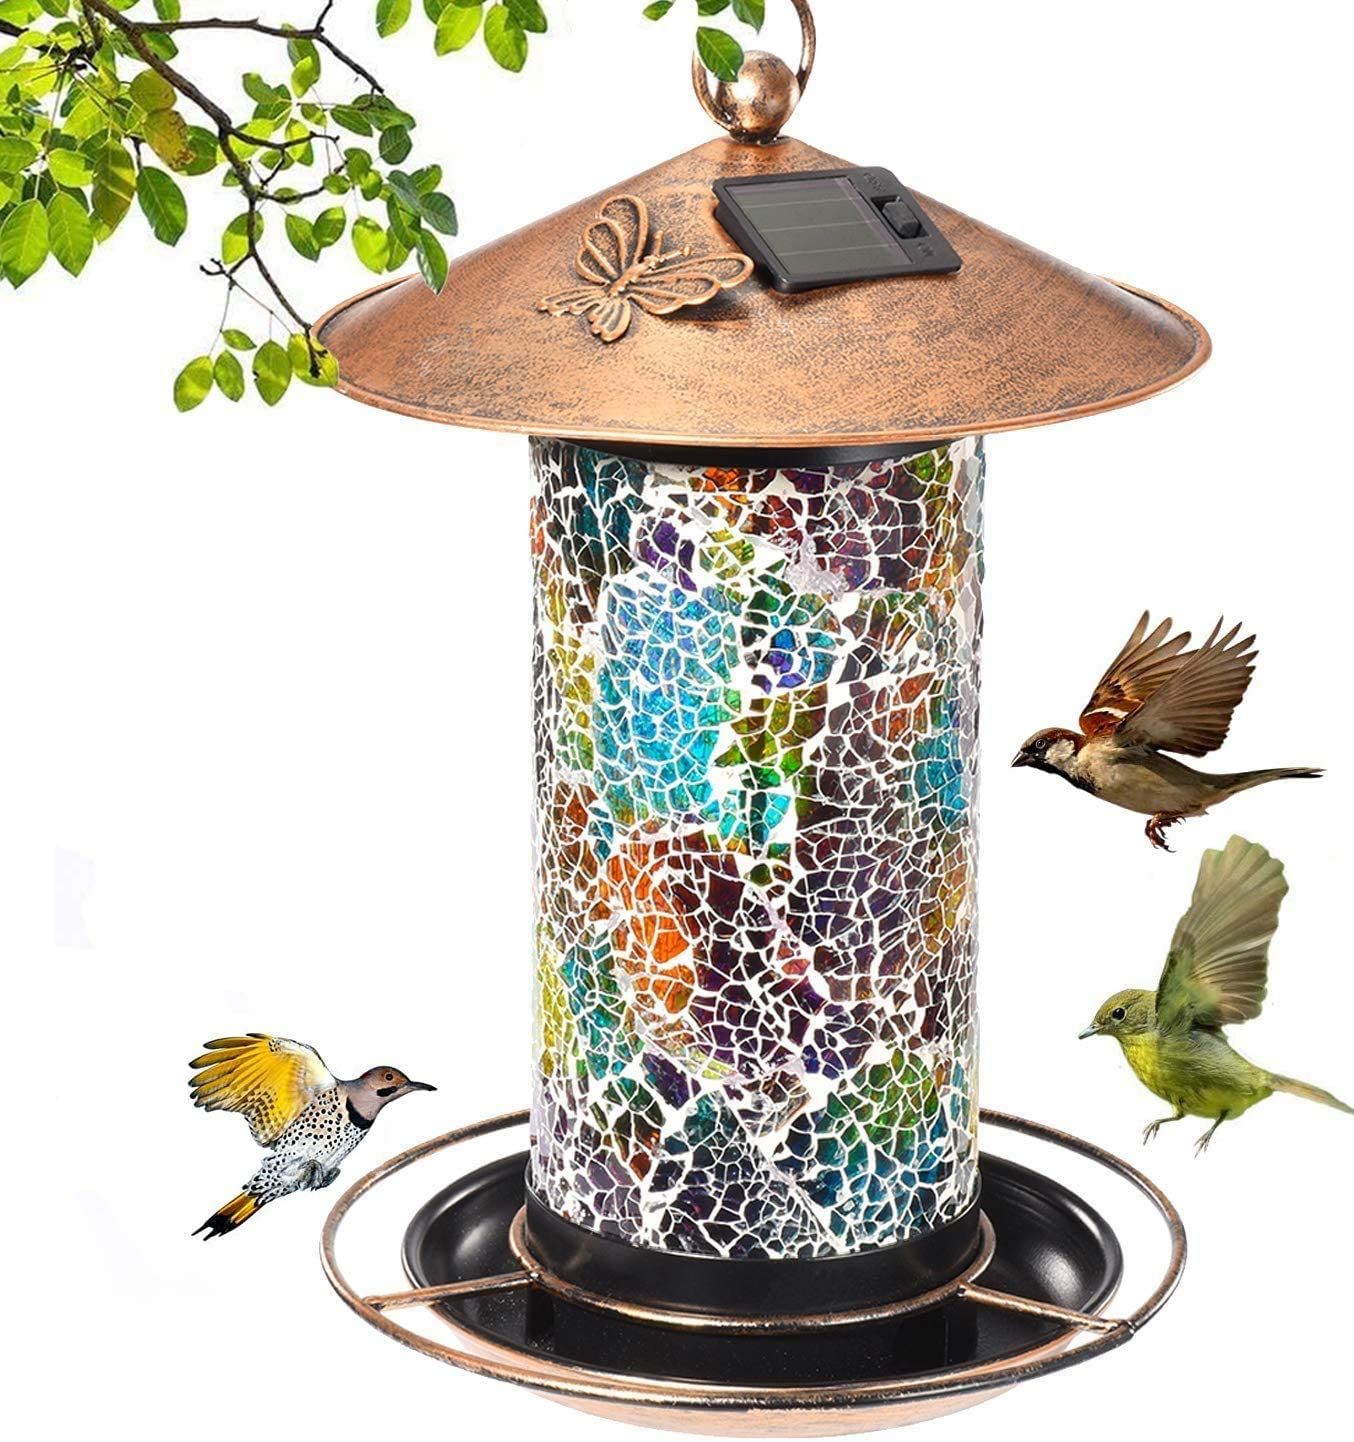 Sunshiney Solar Bird Feeder for Outside Hanging Outdoor,Mosaic Decor,Solar Powered Garden Lantern Lights Bird-House Wild Hanging Bird Feeder Waterproof Unique Retro Copper Bird Feeder for Outdoors